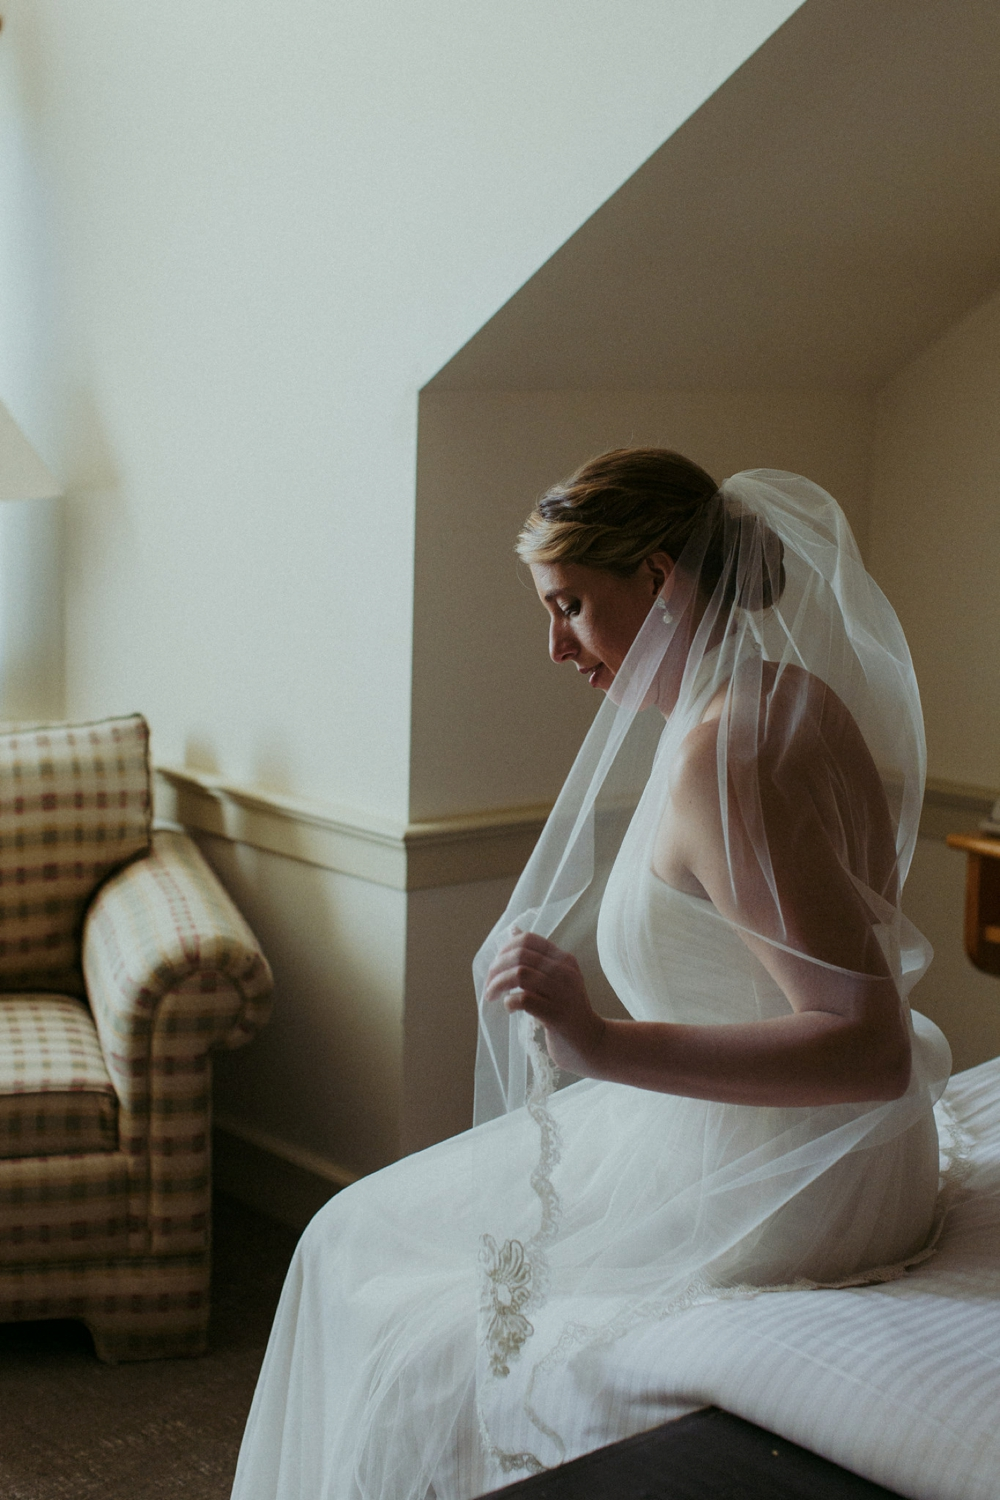 Bride and veil at Vermont wedding.